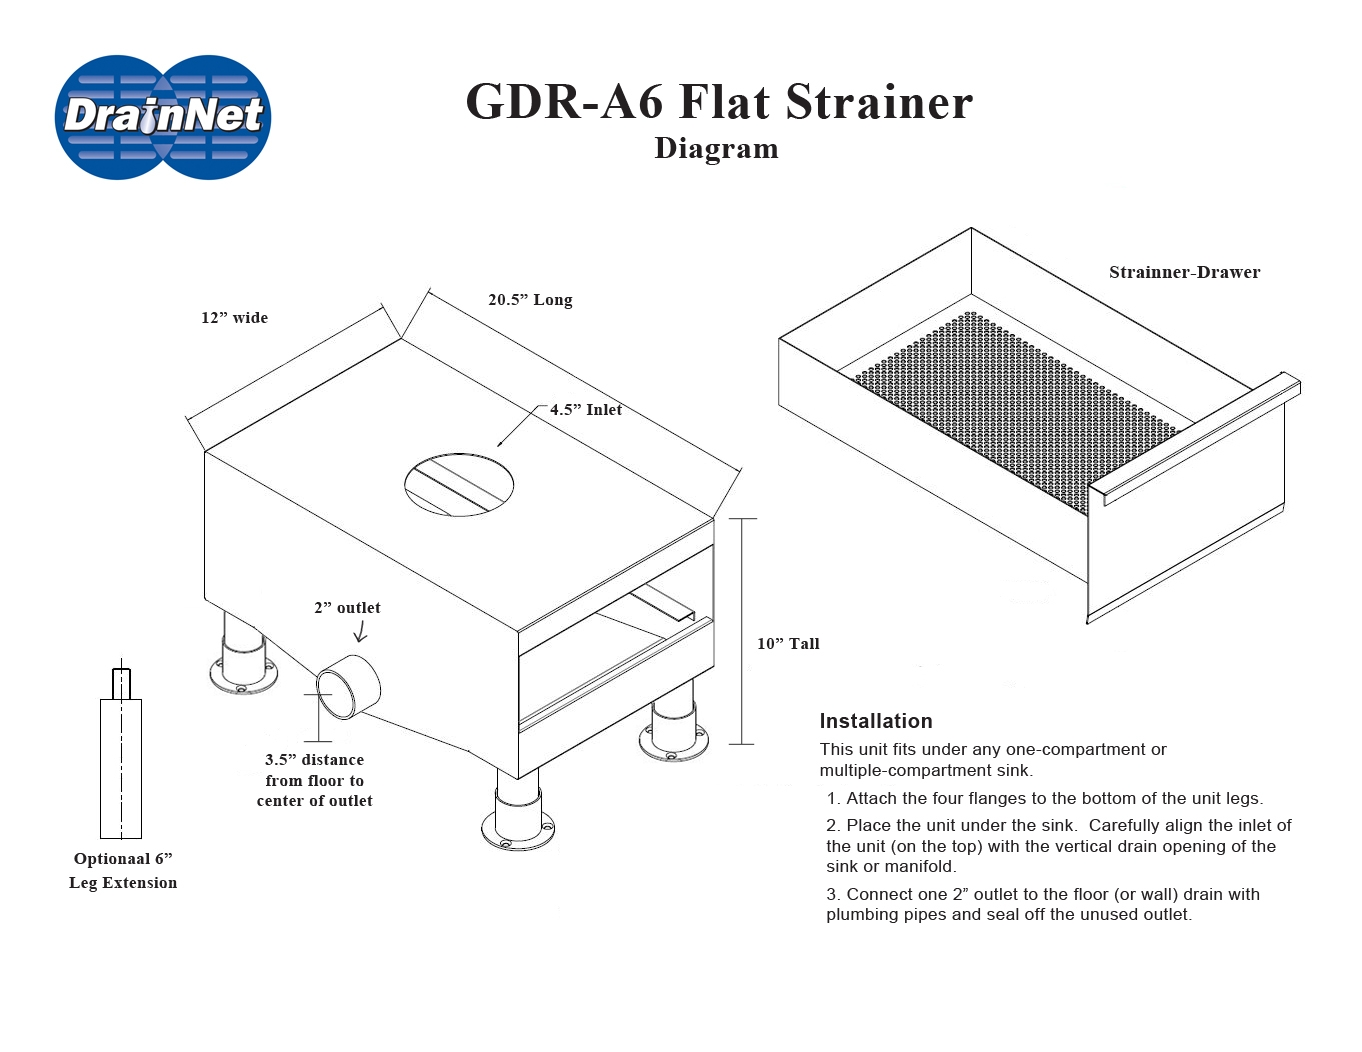 hight resolution of  gdru step 3 and 4 diagram drain net a6 flat strainer 2016